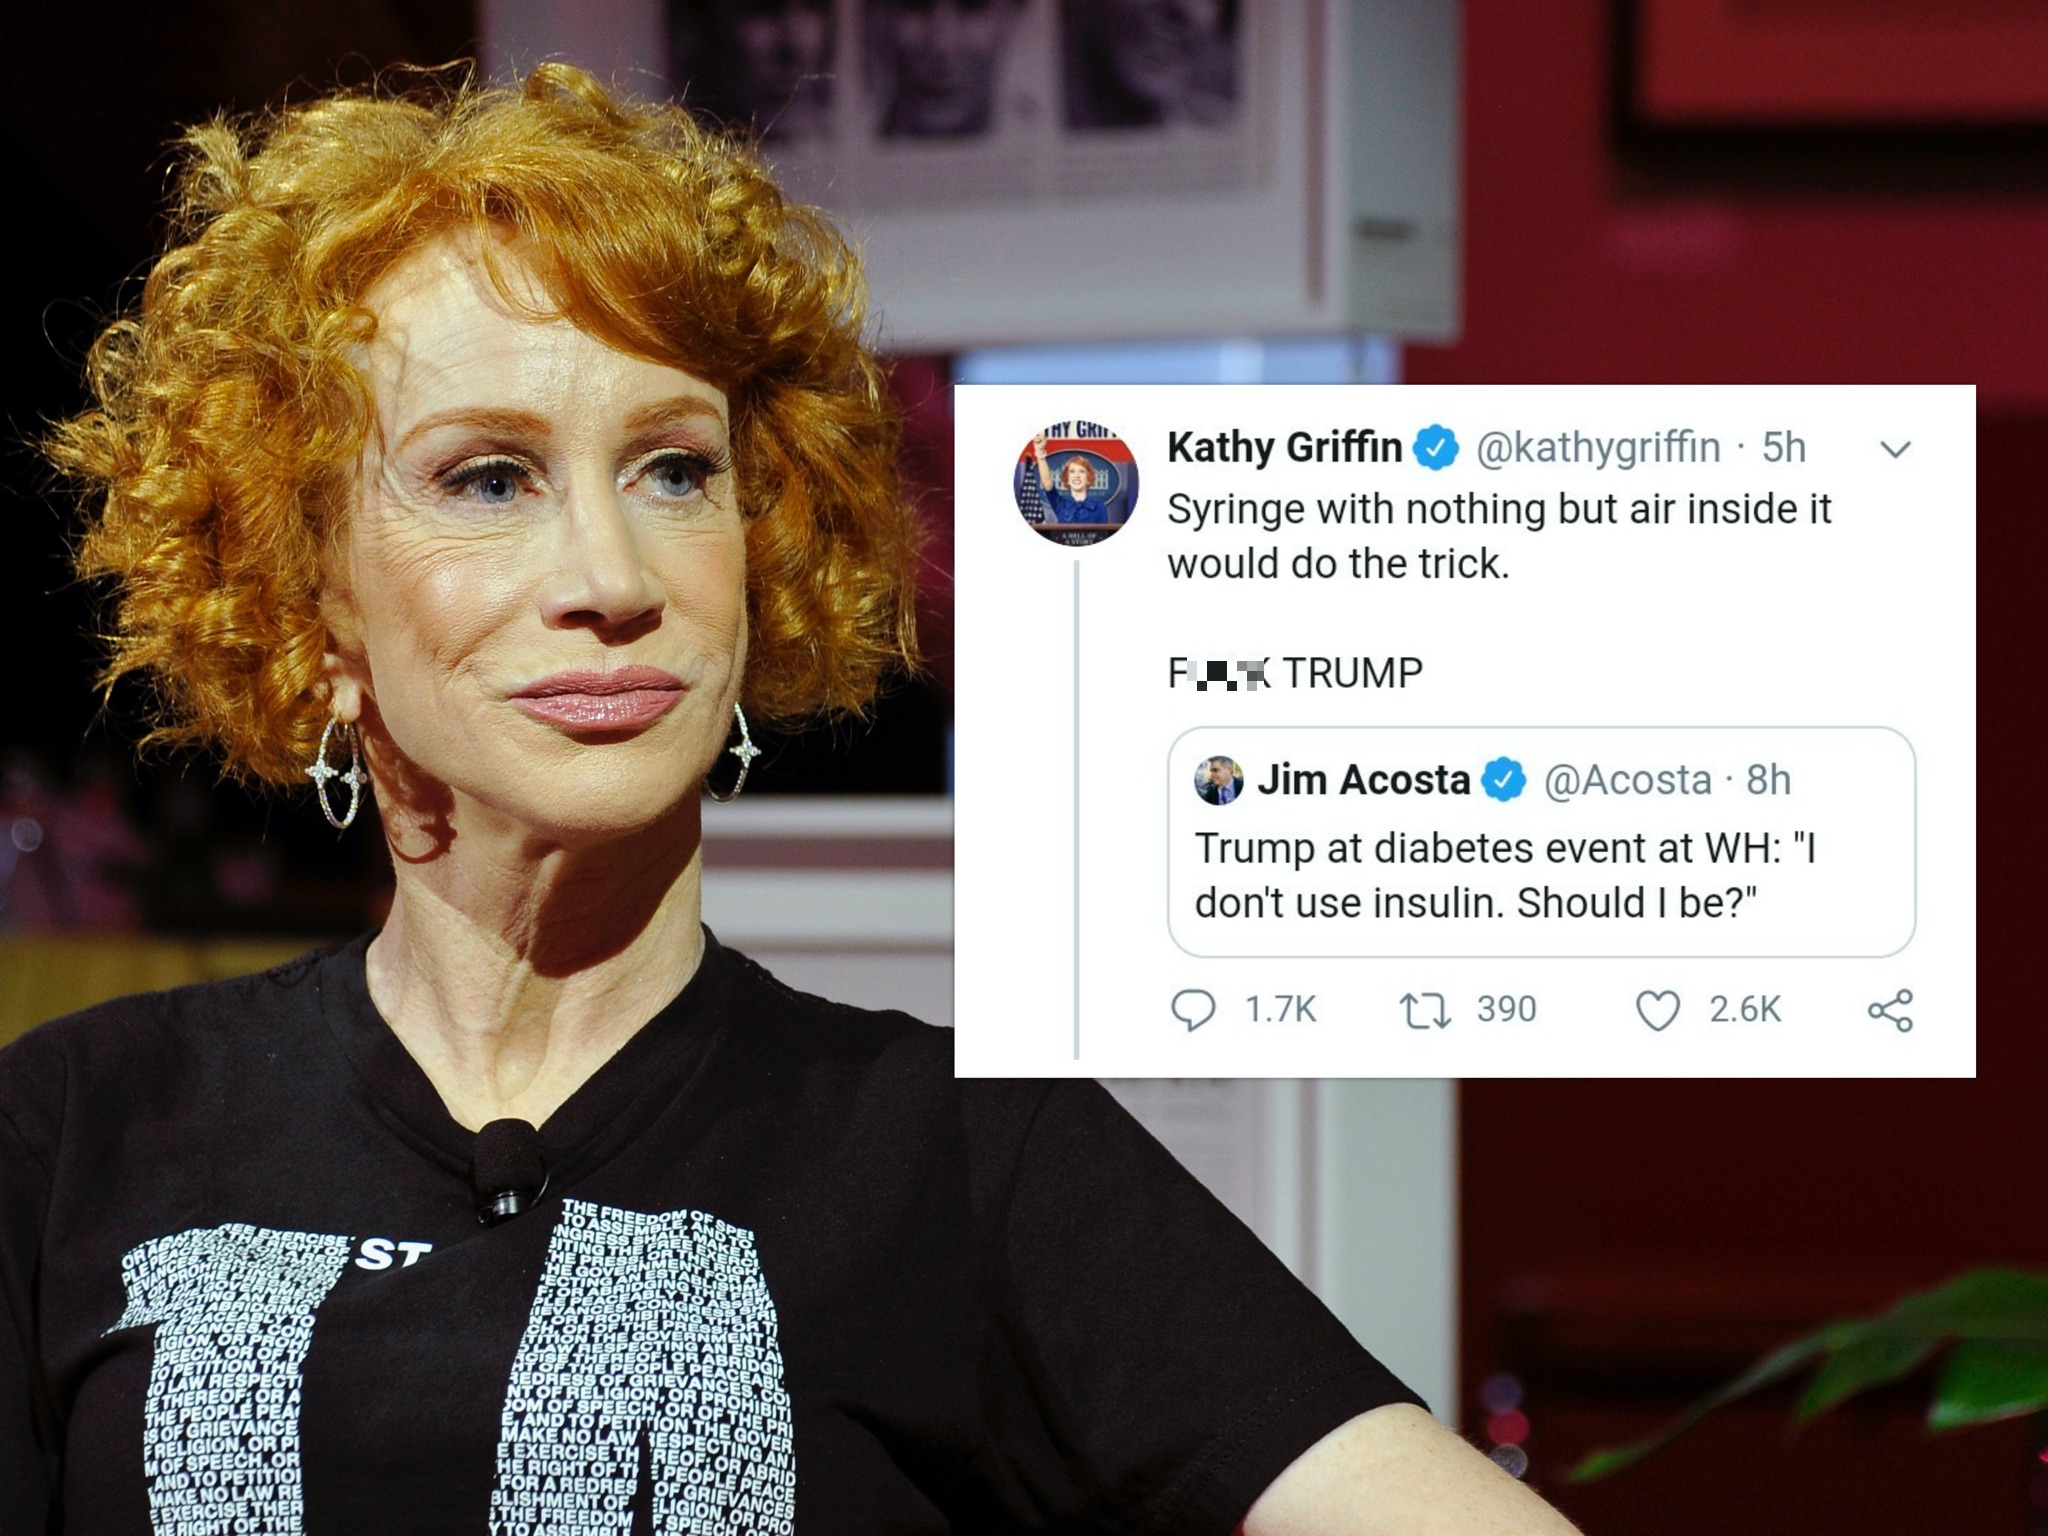 Comediam Kathy Griffin garnered outrage from conservatives for tweeting about US president Donald Trump. (John Sciulli/Getty Images for Playboy Playhouse)